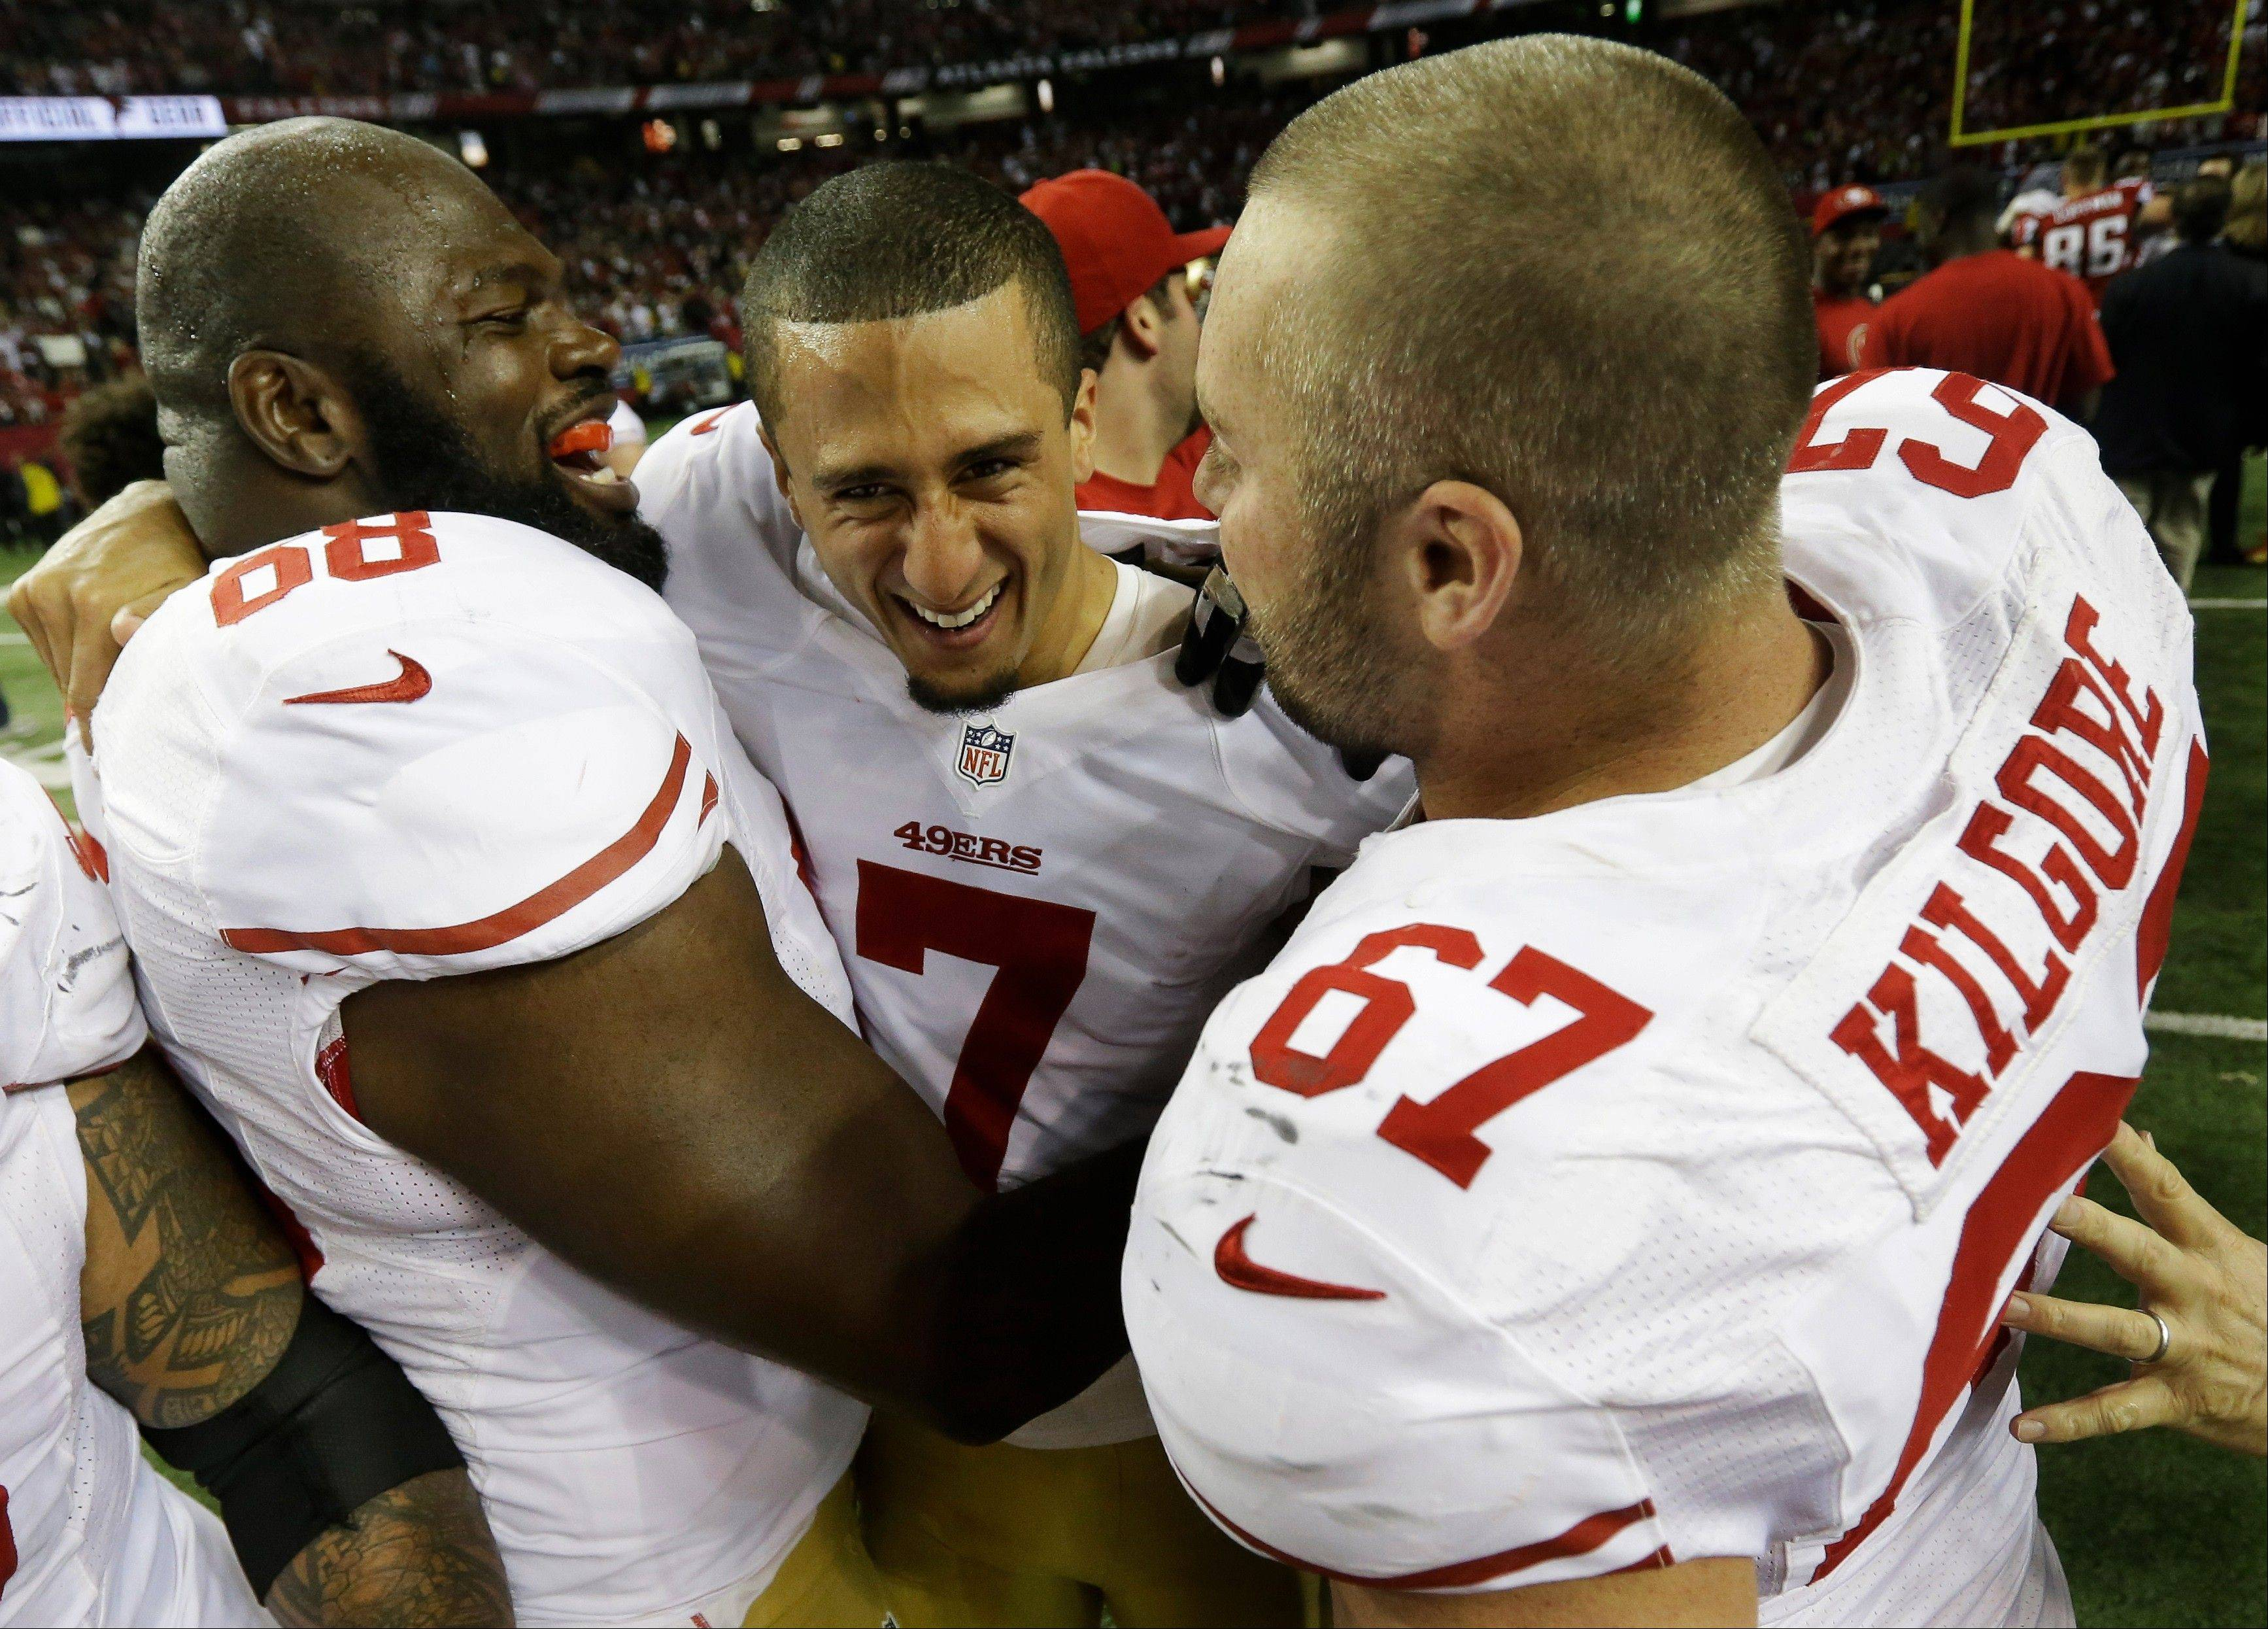 San Francisco 49ers' Colin Kaepernick (7) celebrates with Leonard Davis and Daniel Kilgore (67) after the NFL football NFC Championship game against the Atlanta Falcons in Atlanta. The 49ers won 28-24 to advance to Super Bowl XLVII.